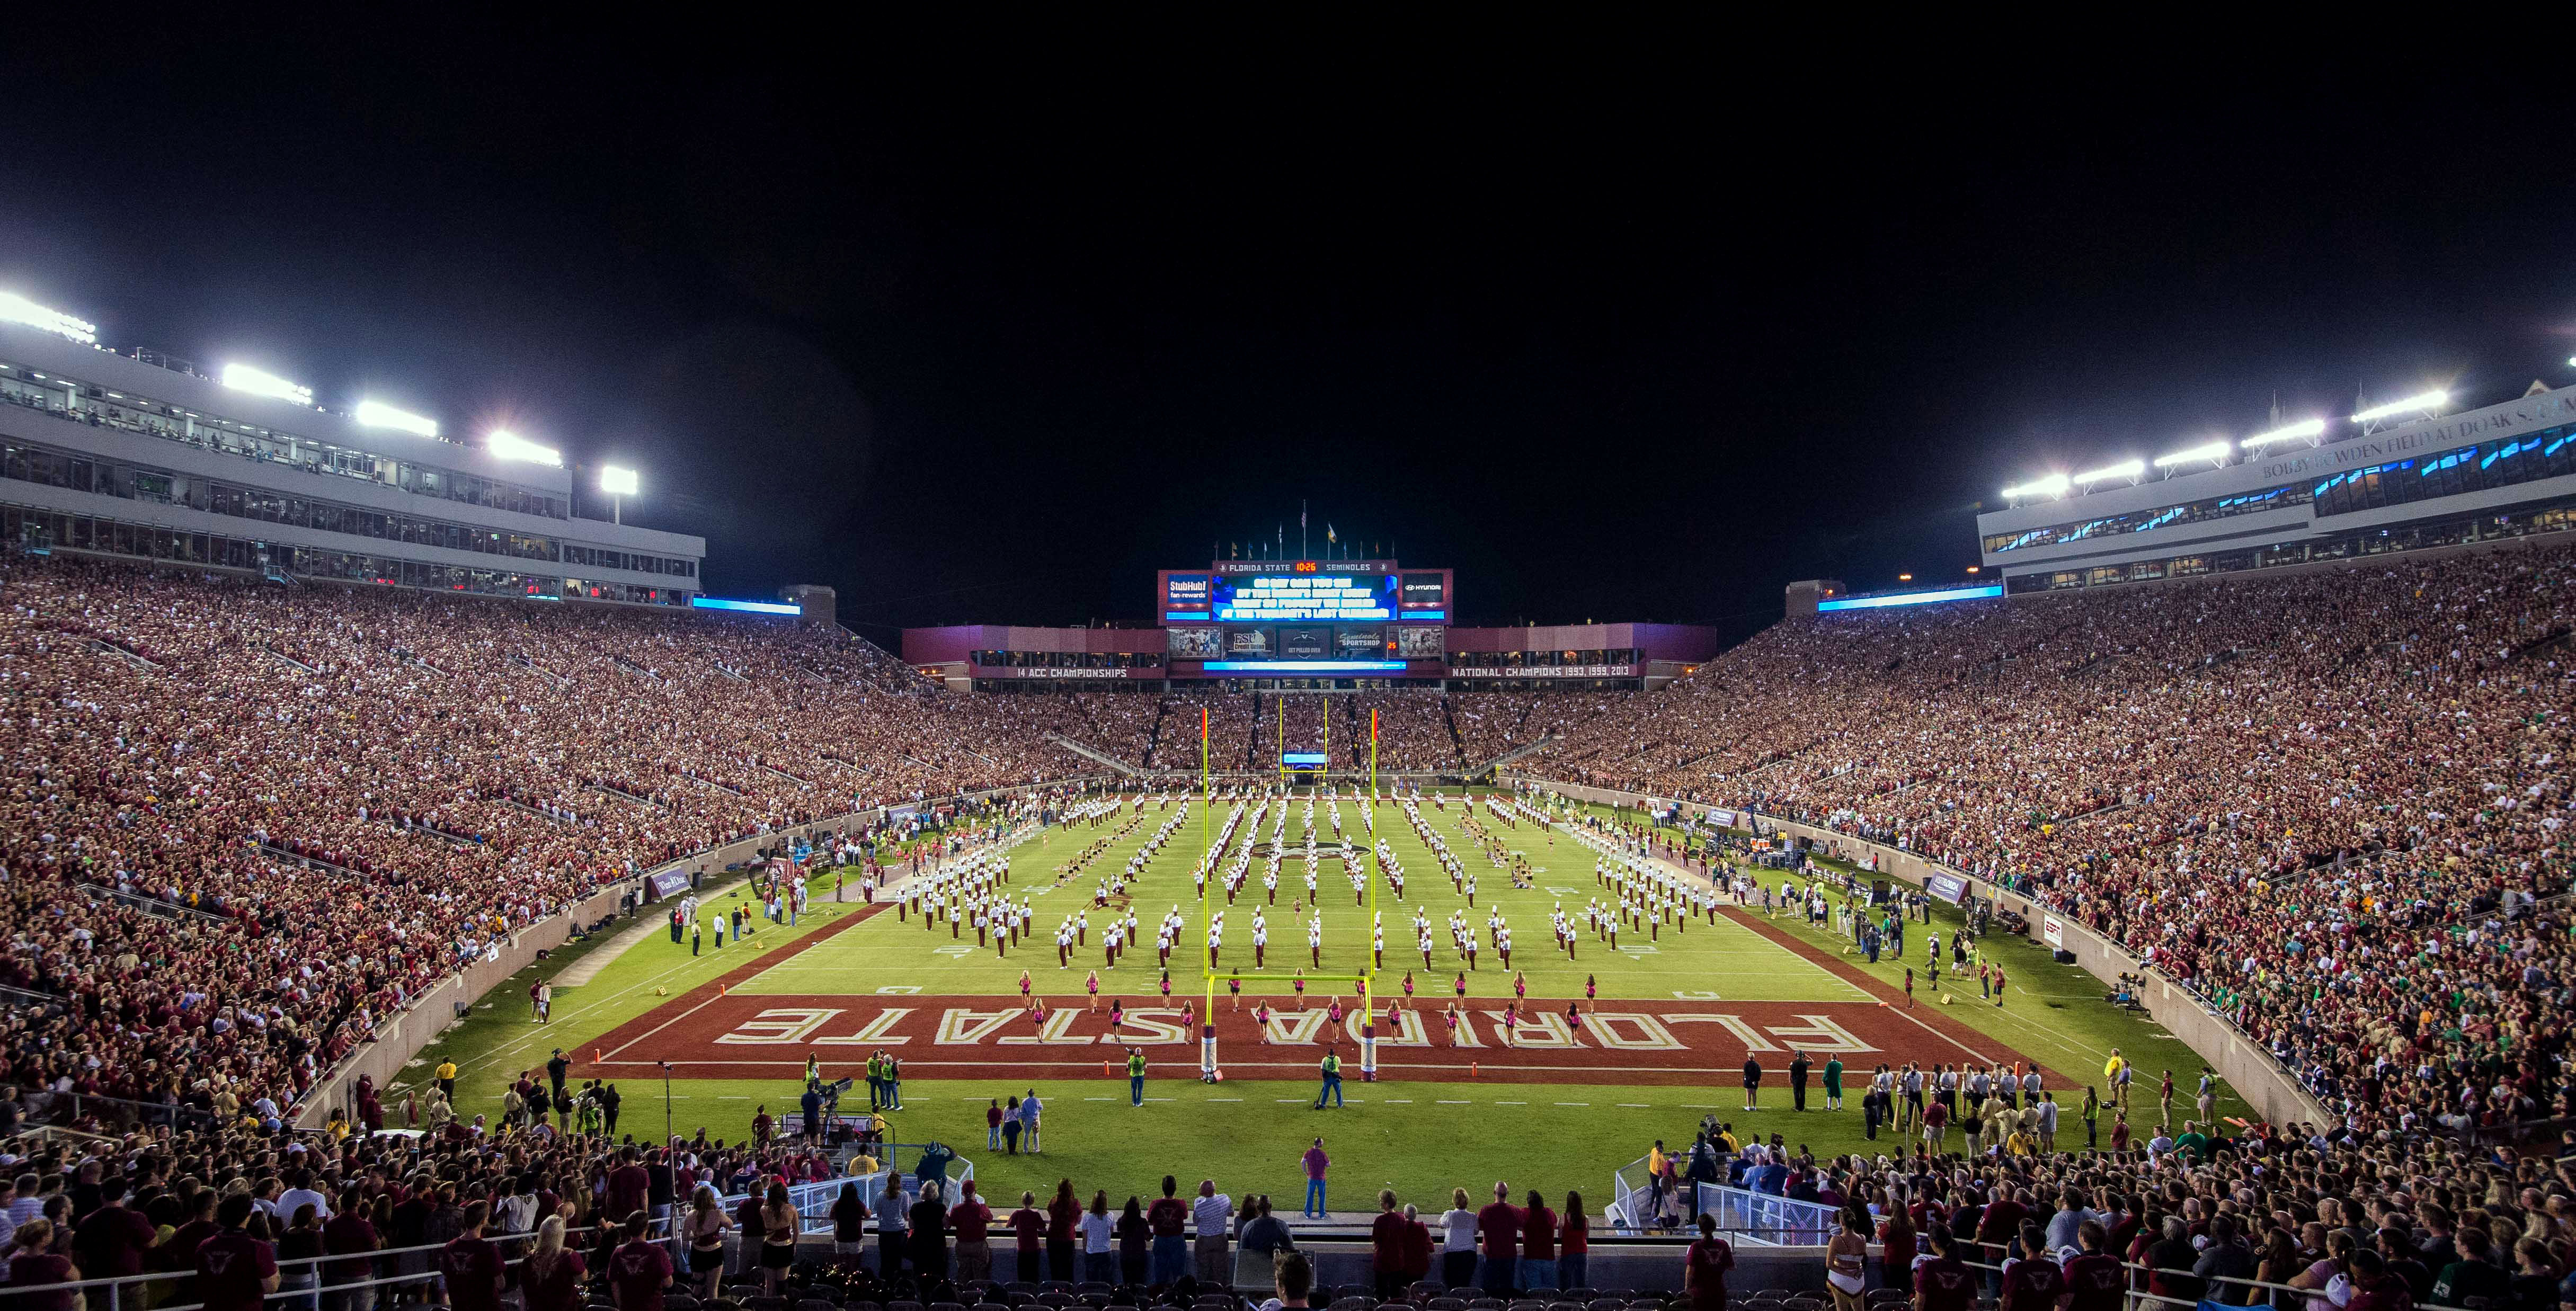 Oct 18, 2014; Tallahassee, FL, USA; A general view of Doak Campbell Stadium before the game between the Notre Dame Fighting Irish and the Florida State Seminoles. (Matt Cashore-USA TODAY Sports)